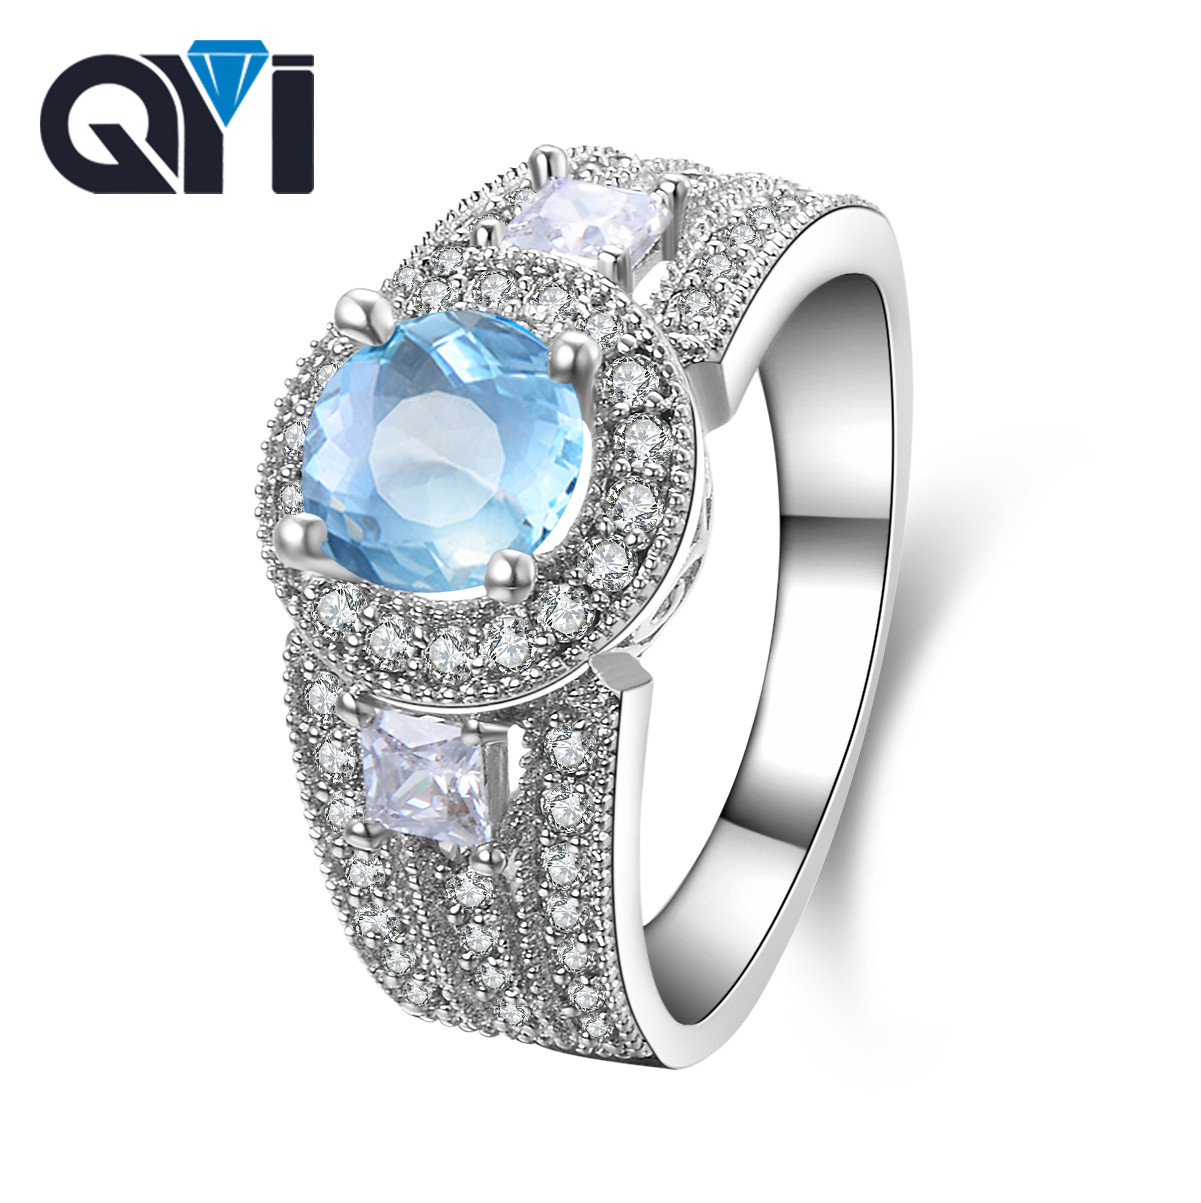 QYI 1.25 ct Natural sky Blue Topaz Ring for Women 925 Sterling Silver Gemstone Ring Luxury Engagement Jewelry Size 5 6 7 8 9QYI 1.25 ct Natural sky Blue Topaz Ring for Women 925 Sterling Silver Gemstone Ring Luxury Engagement Jewelry Size 5 6 7 8 9